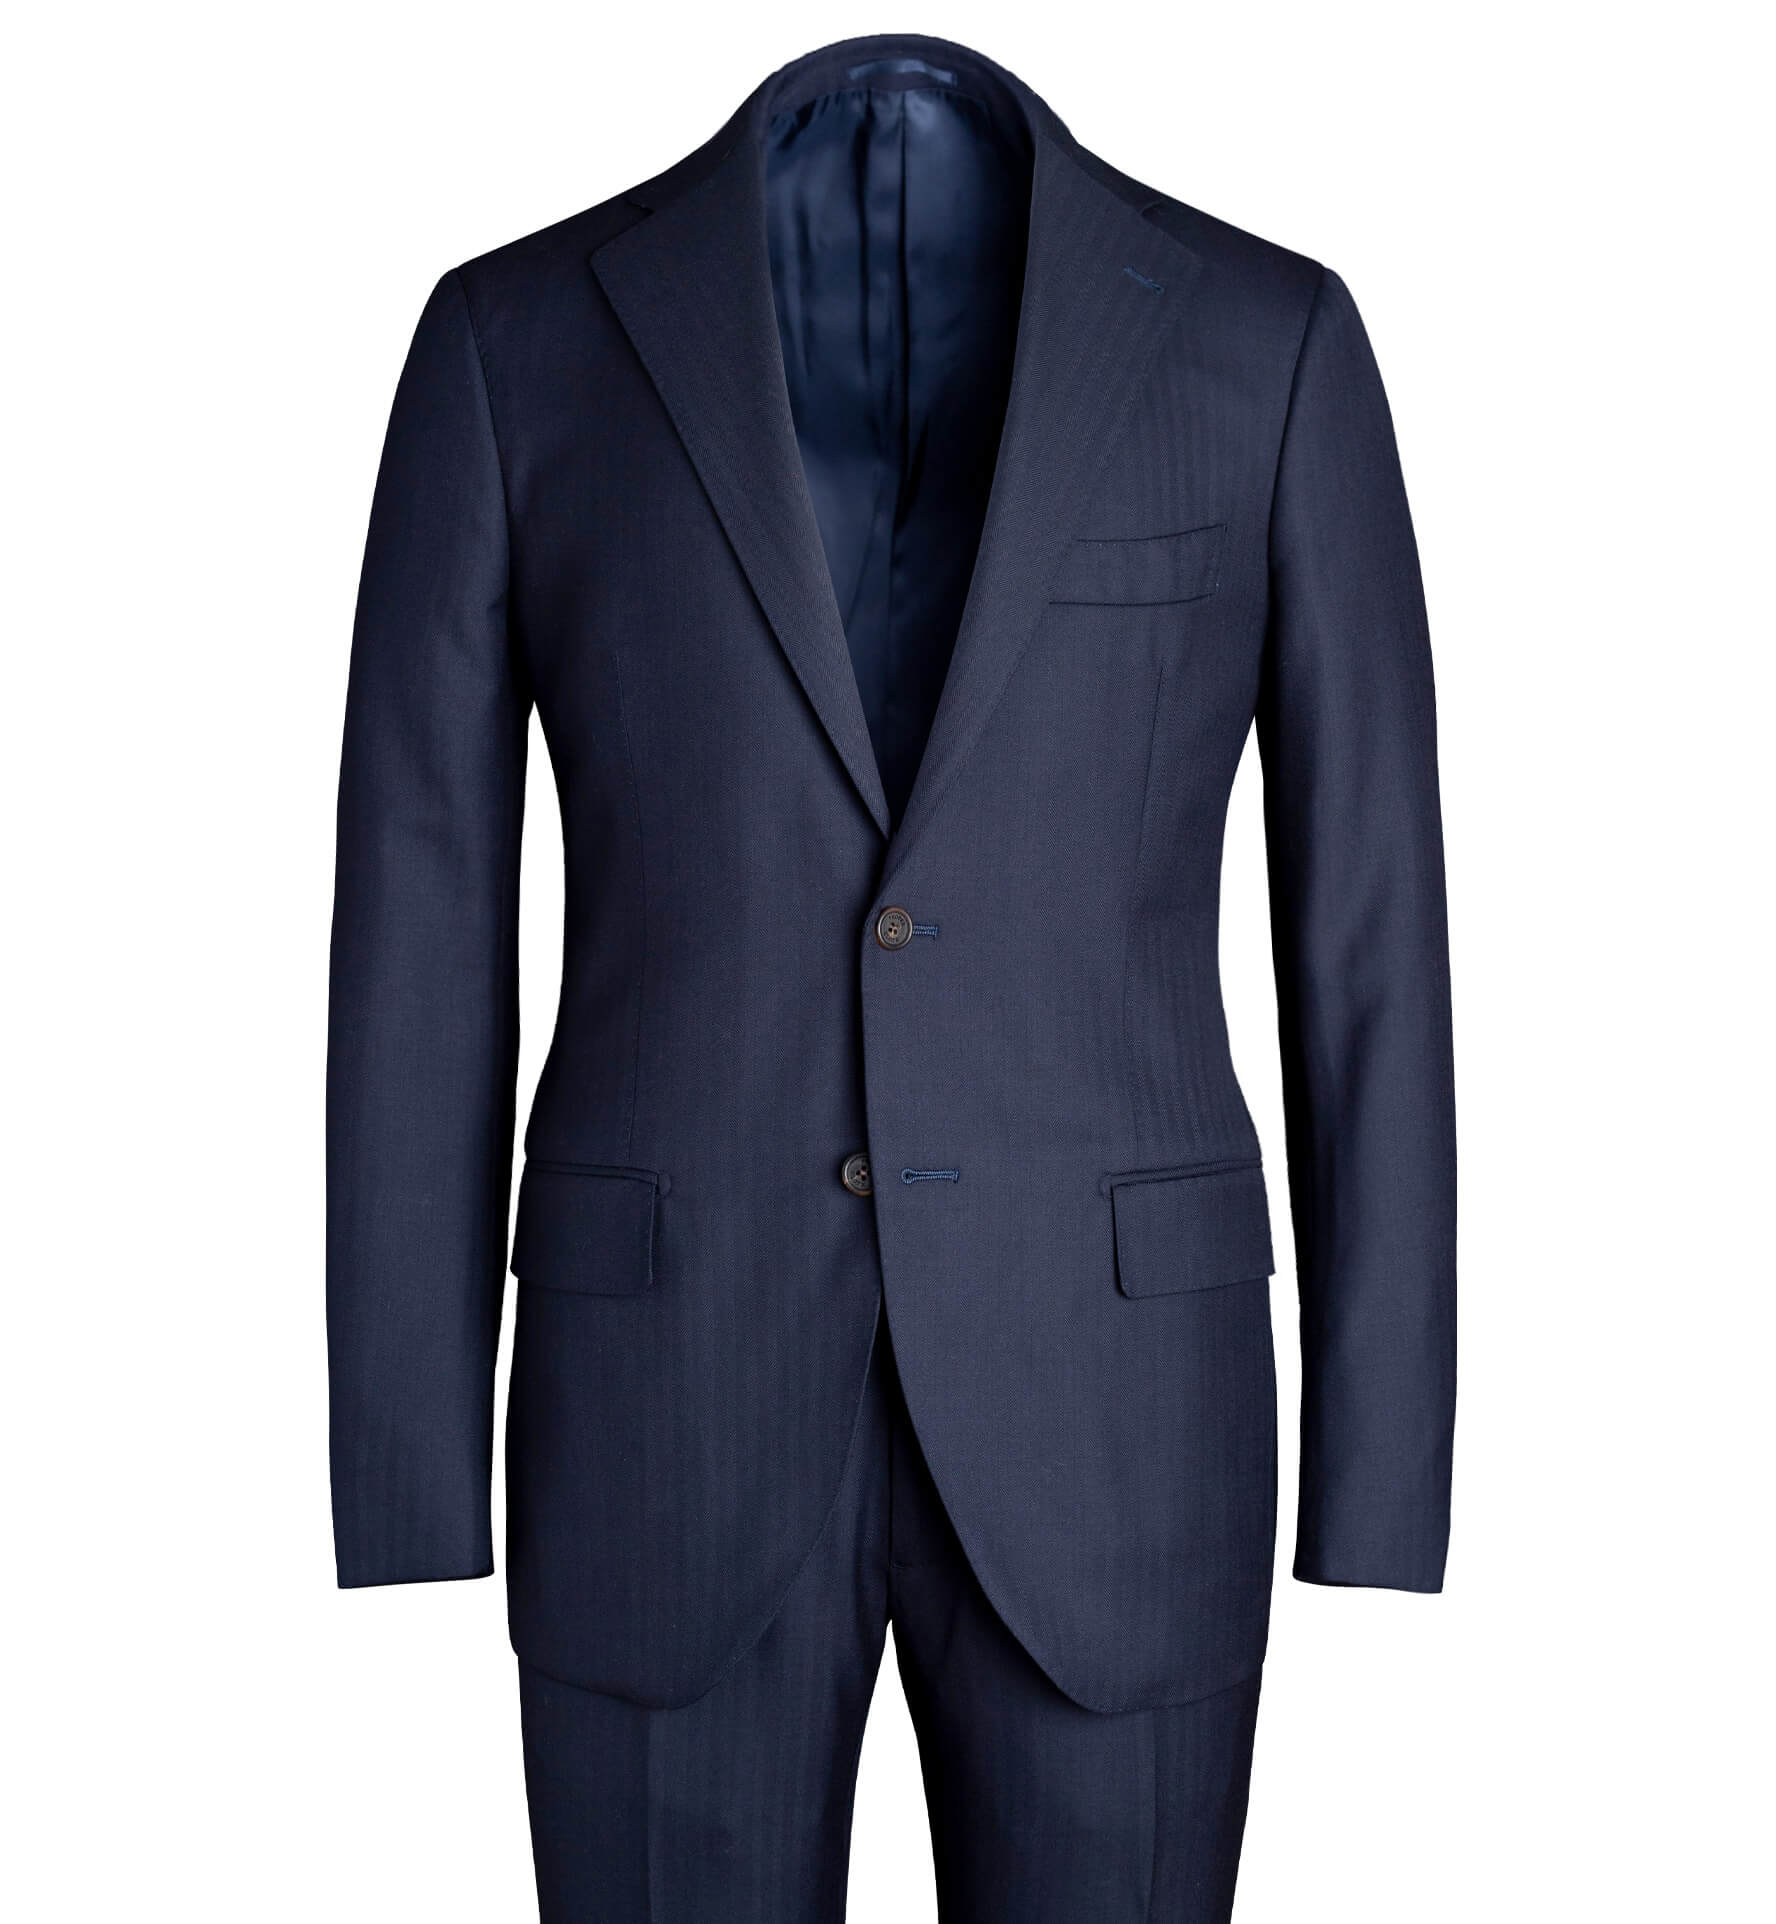 Zoom Image of Allen Navy S130s Herringbone Suit